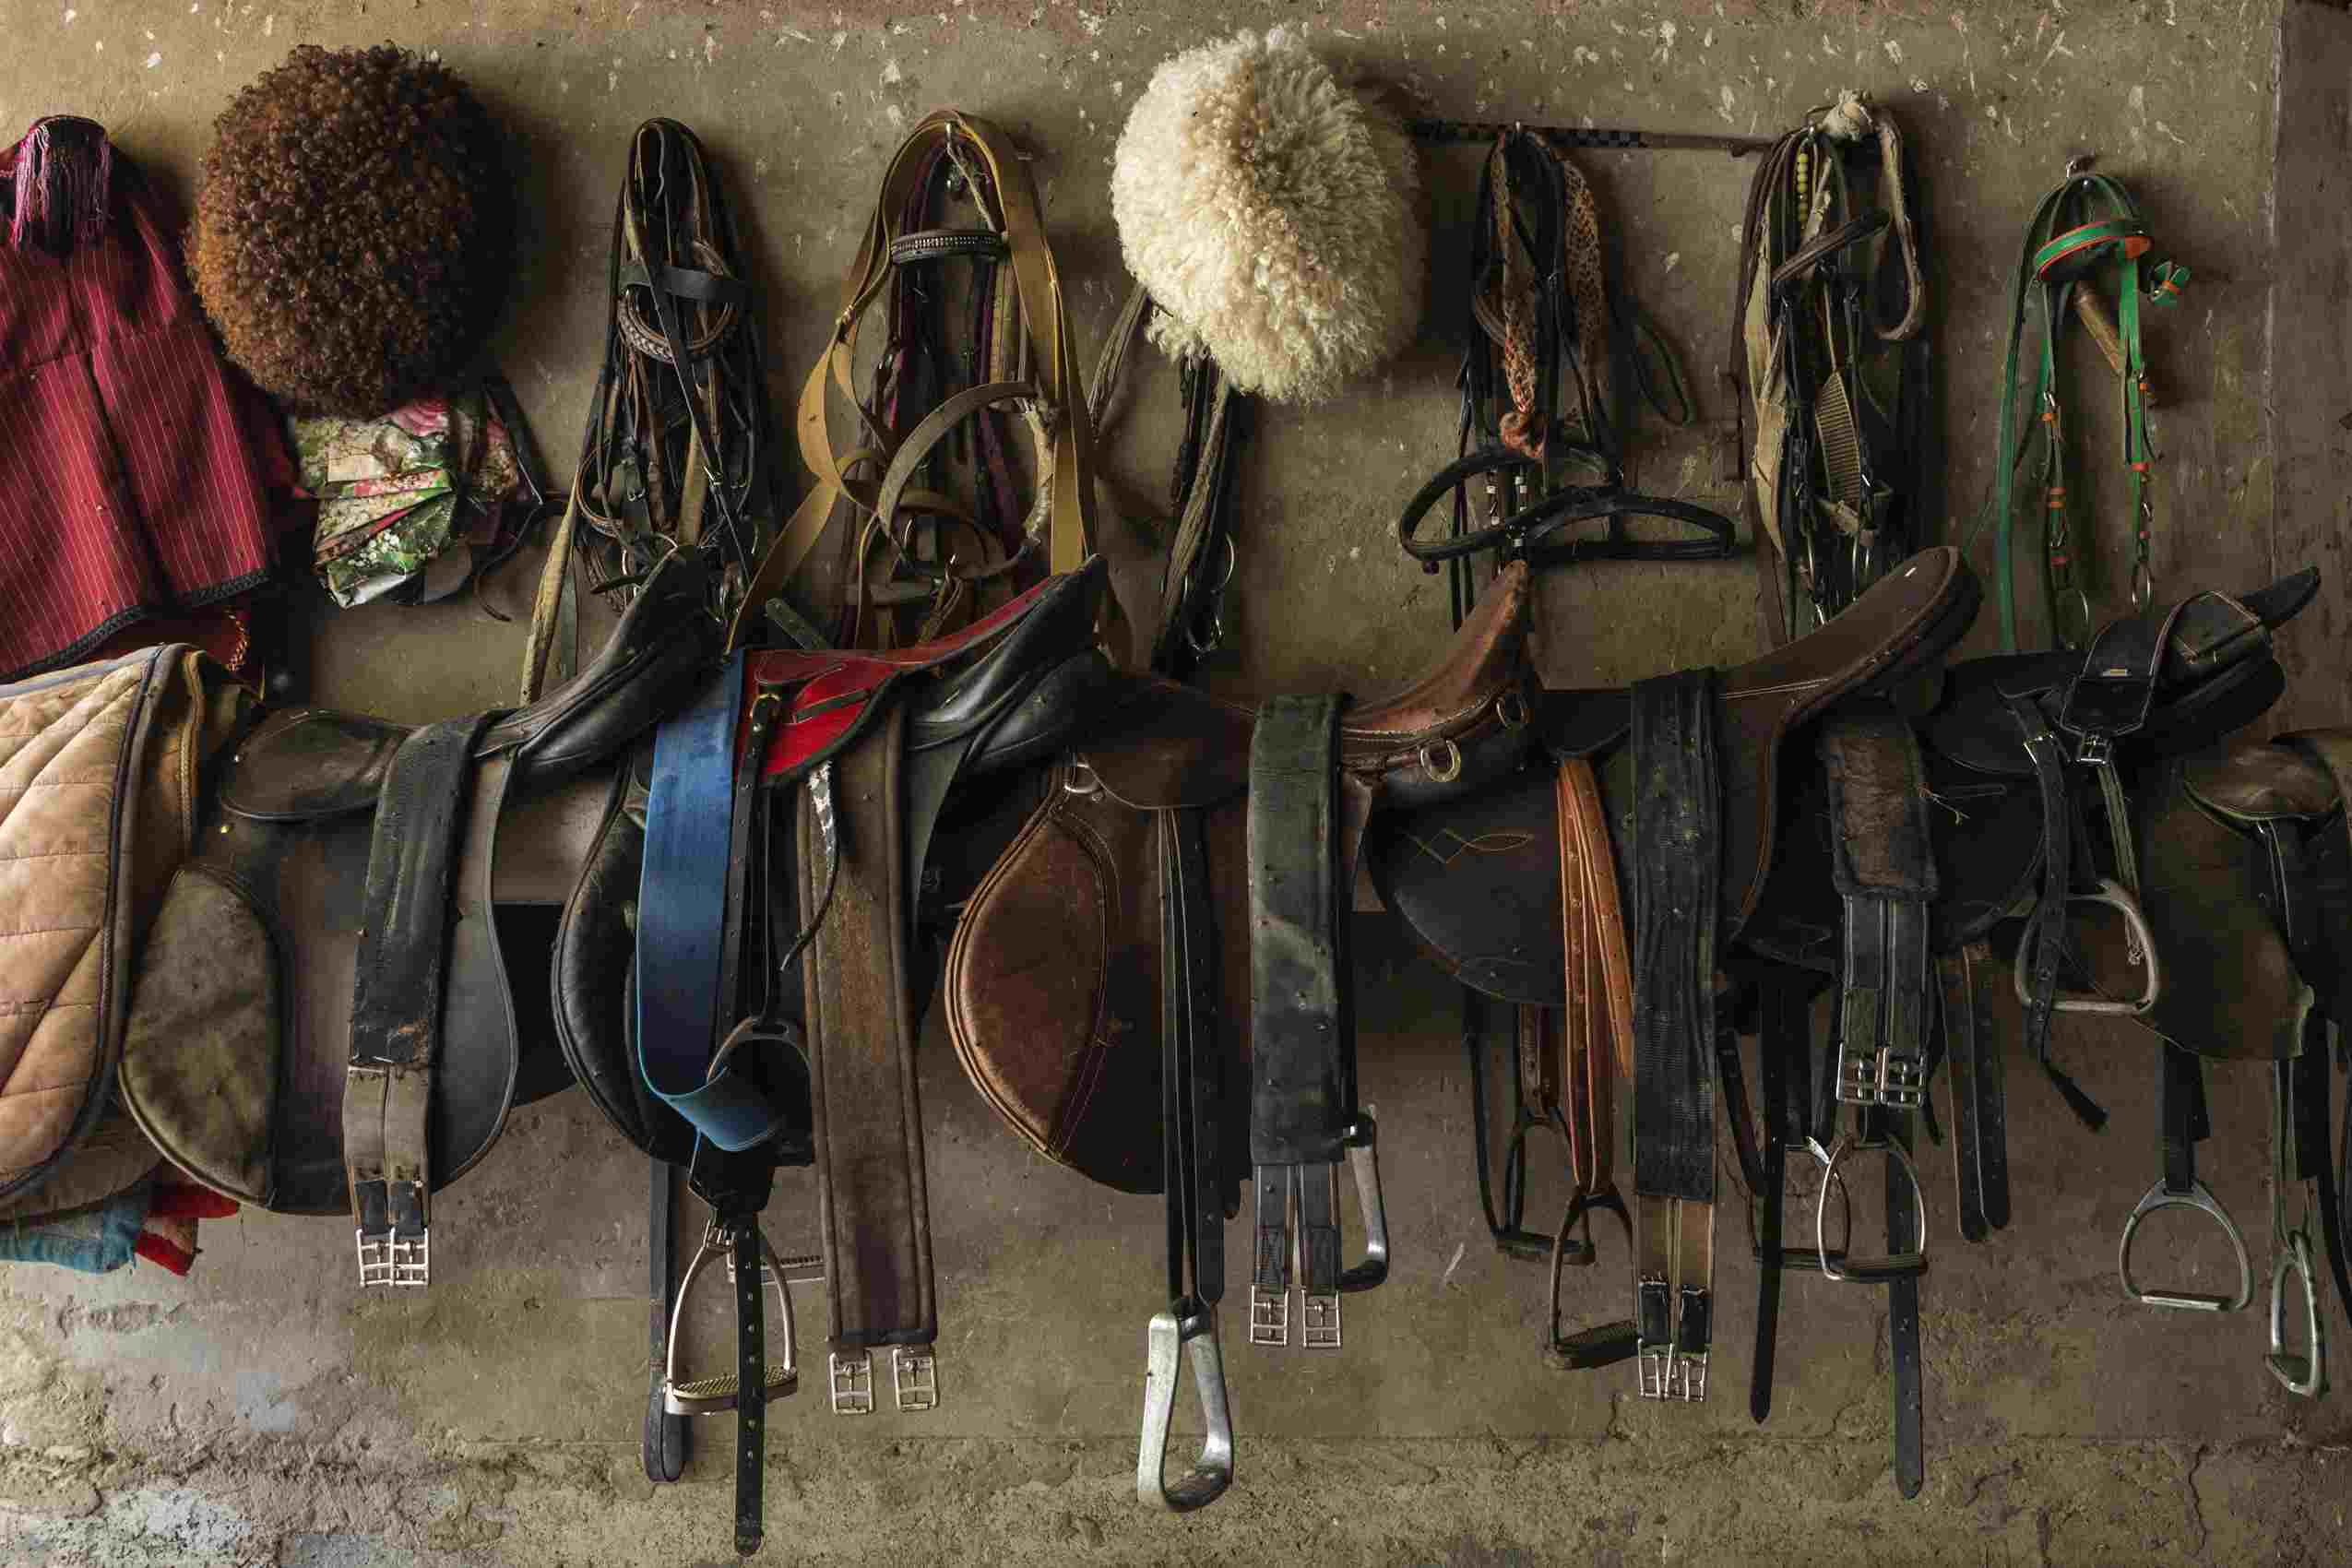 Equestrian gear hanging up on a wall.